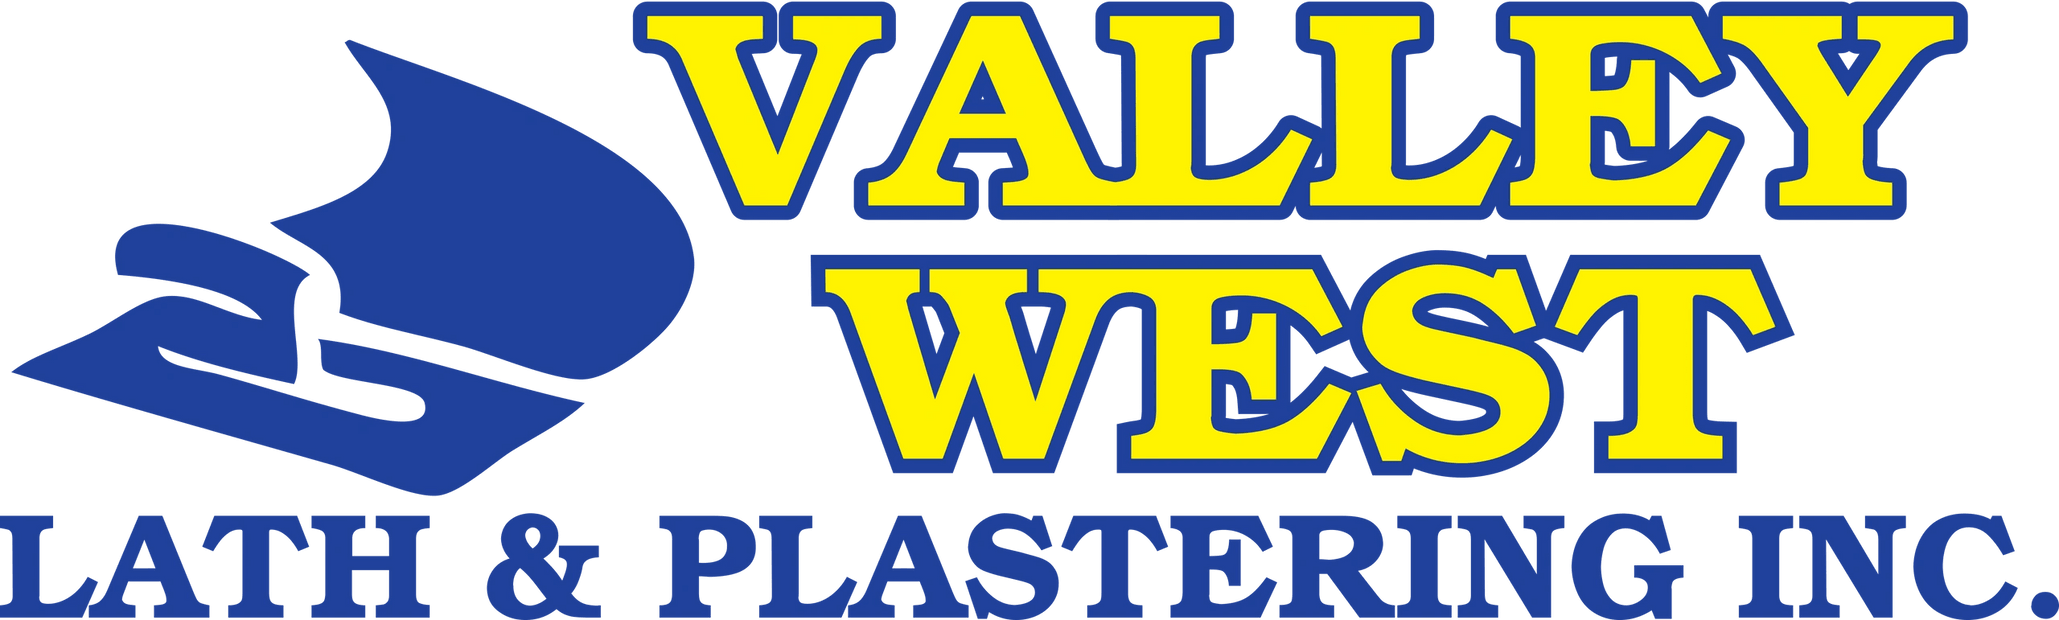 Valley West Lath and Plastering Inc.